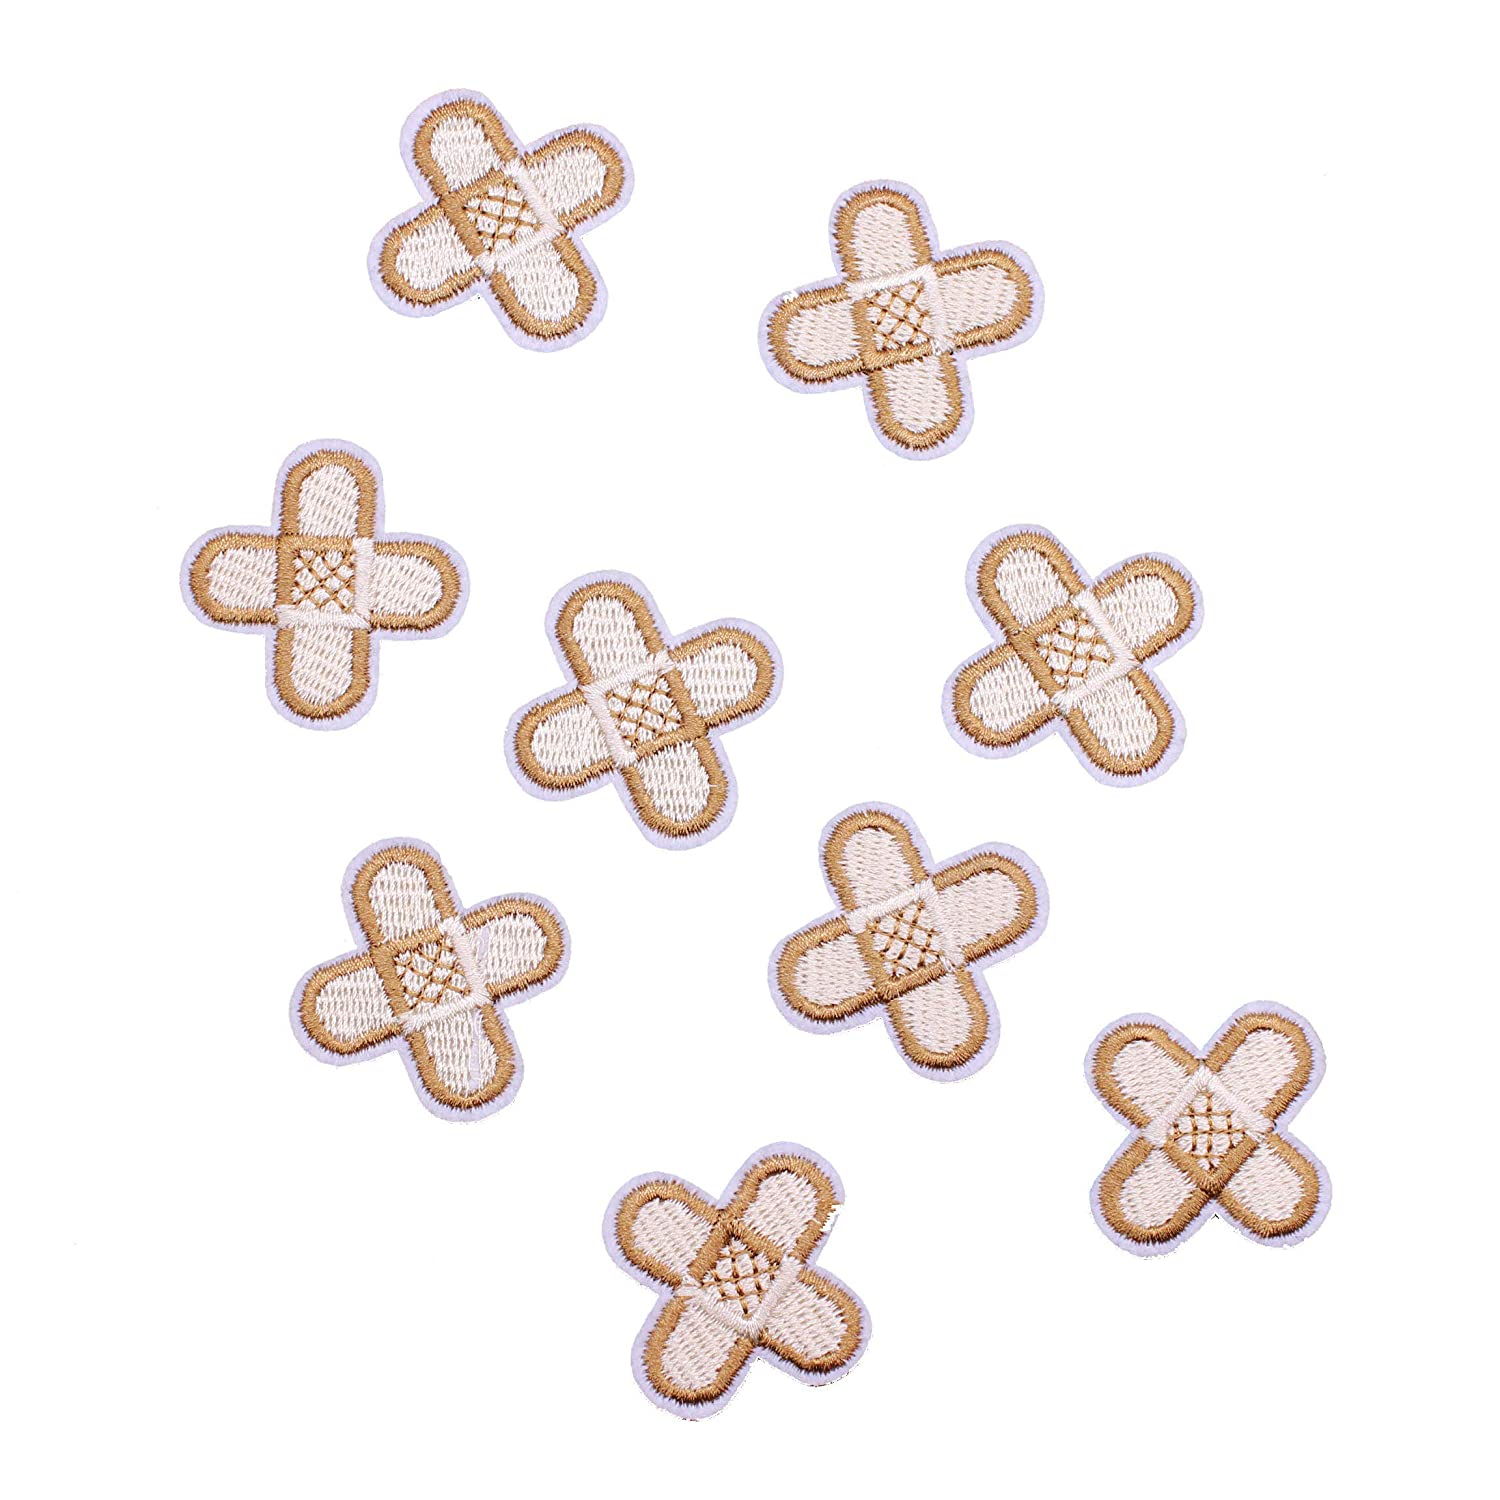 Pack of 1PC Size: 2.6x2.6 inch Backpacks Cute Band Aid Patch for Kids Clothing Jeans U-Sky Sew or Iron on Patches Biker Jackets